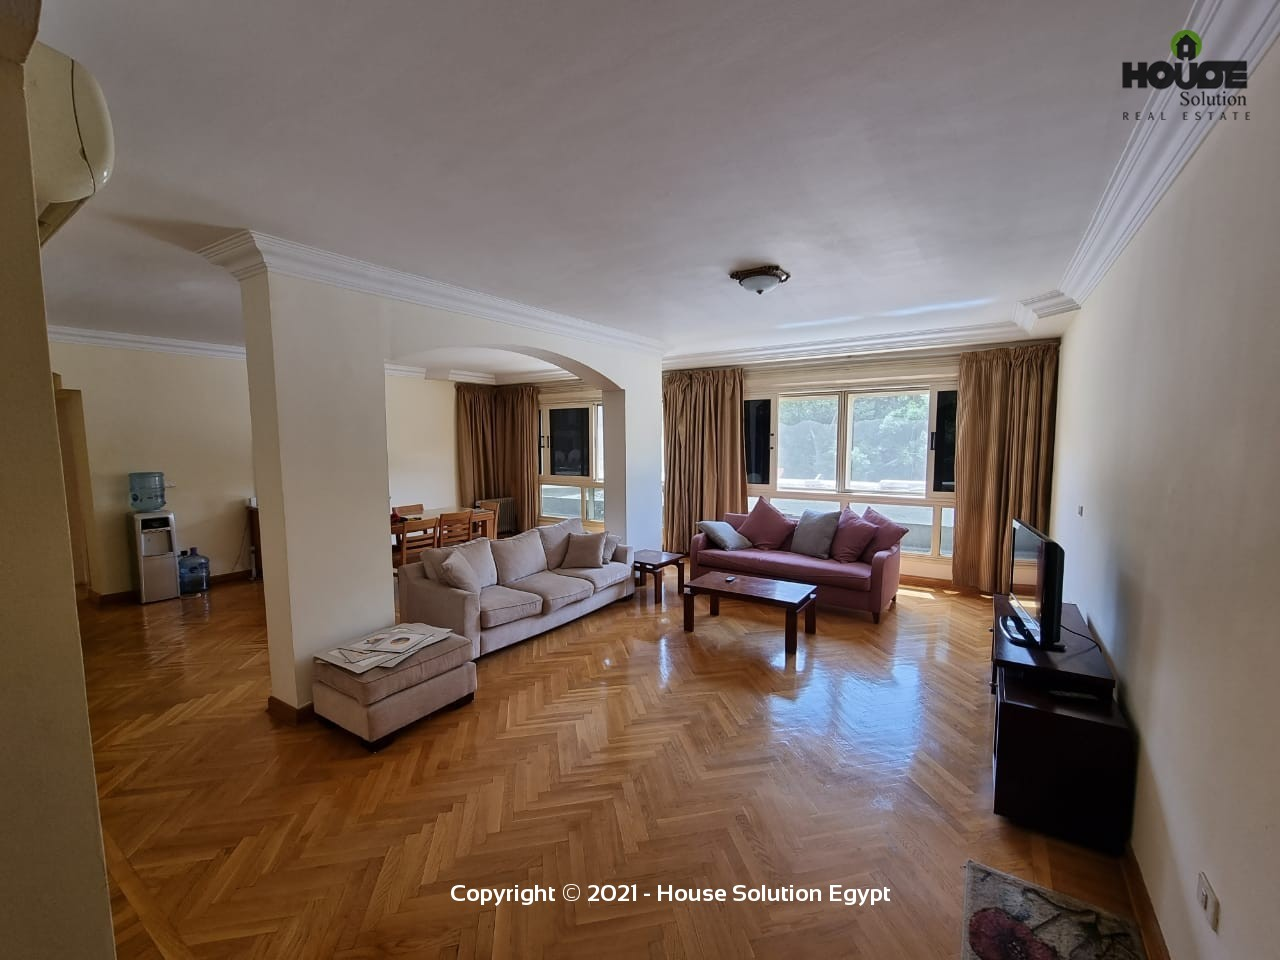 Spacious Fully Furnished Apartment For Rent In Degla El Maadi Near Cairo American College (C.a.c.) - 5001 Featured Image